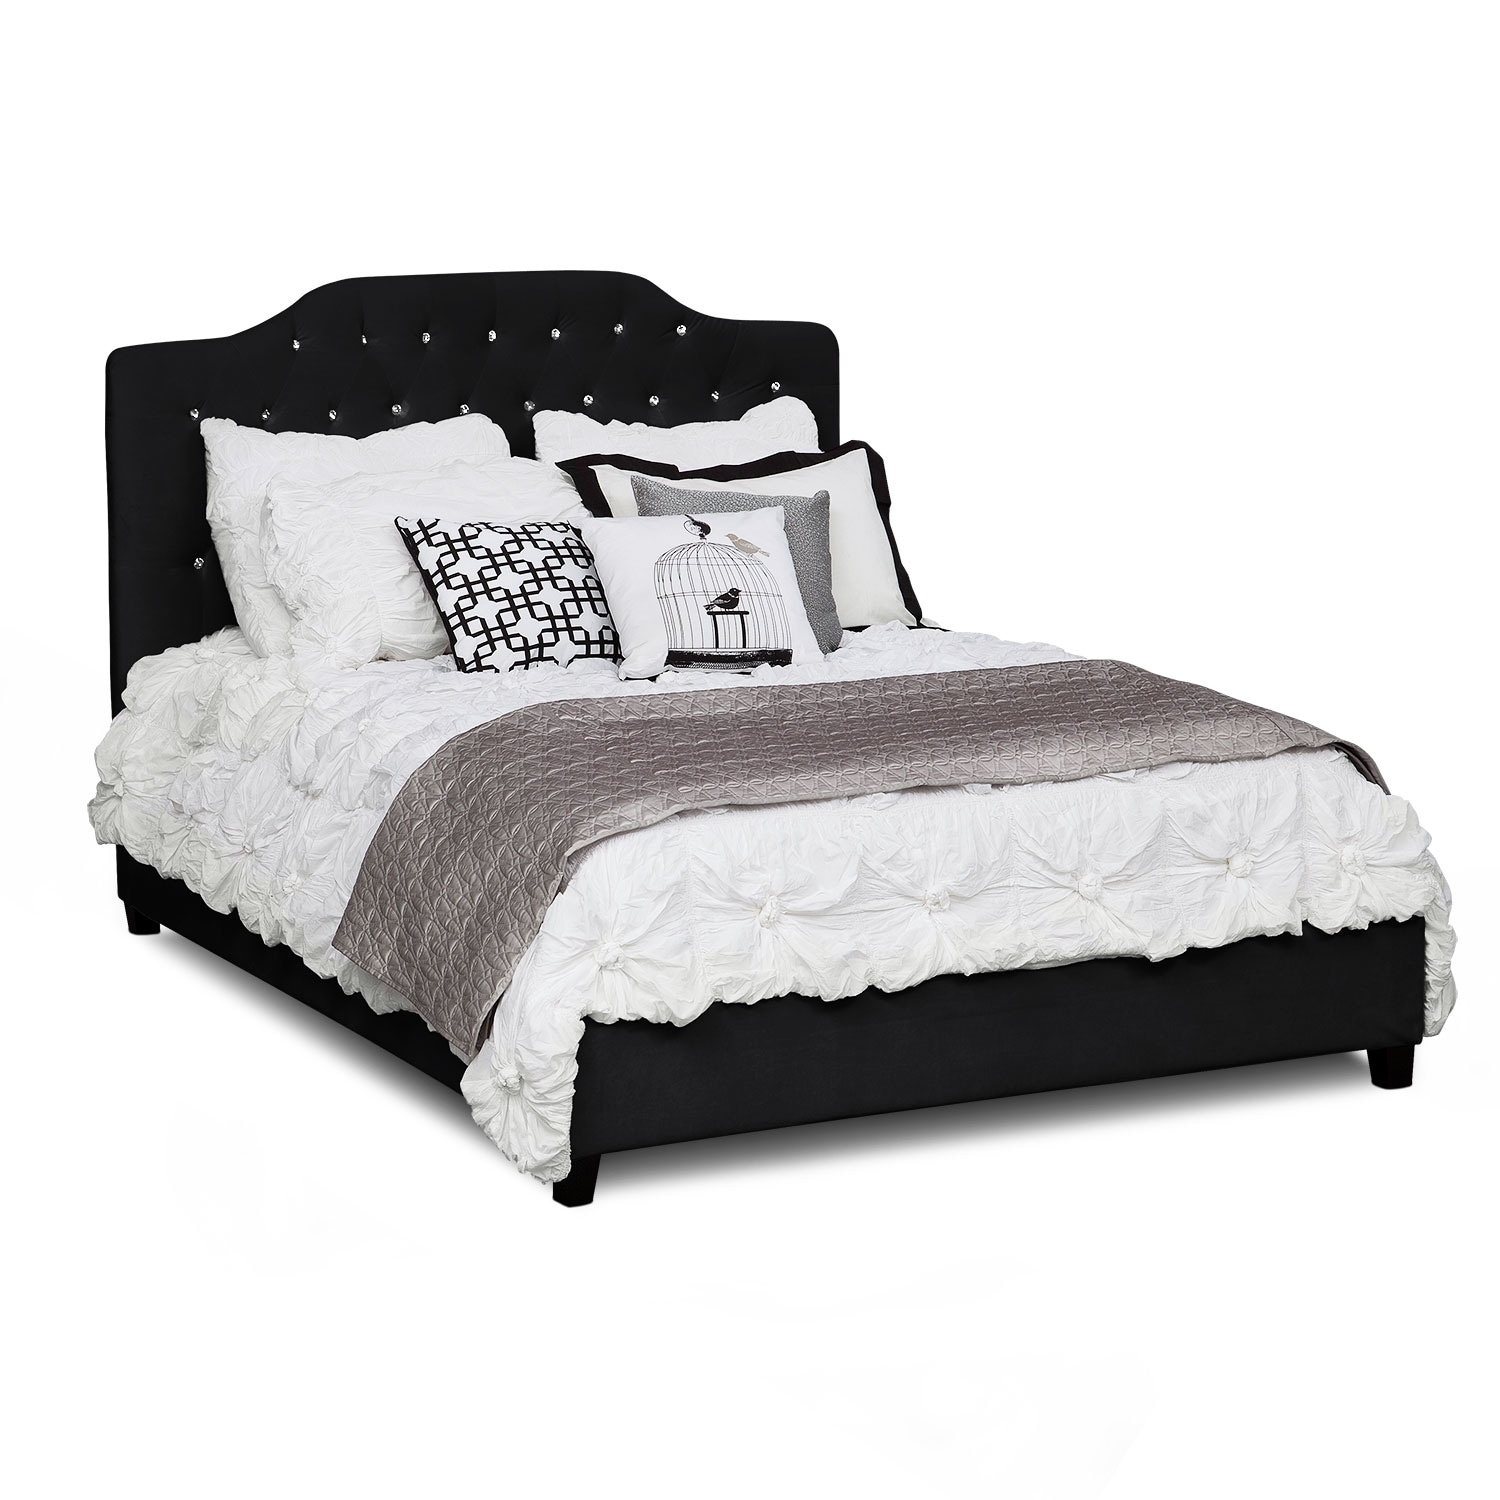 Valerie Queen Bed - Black